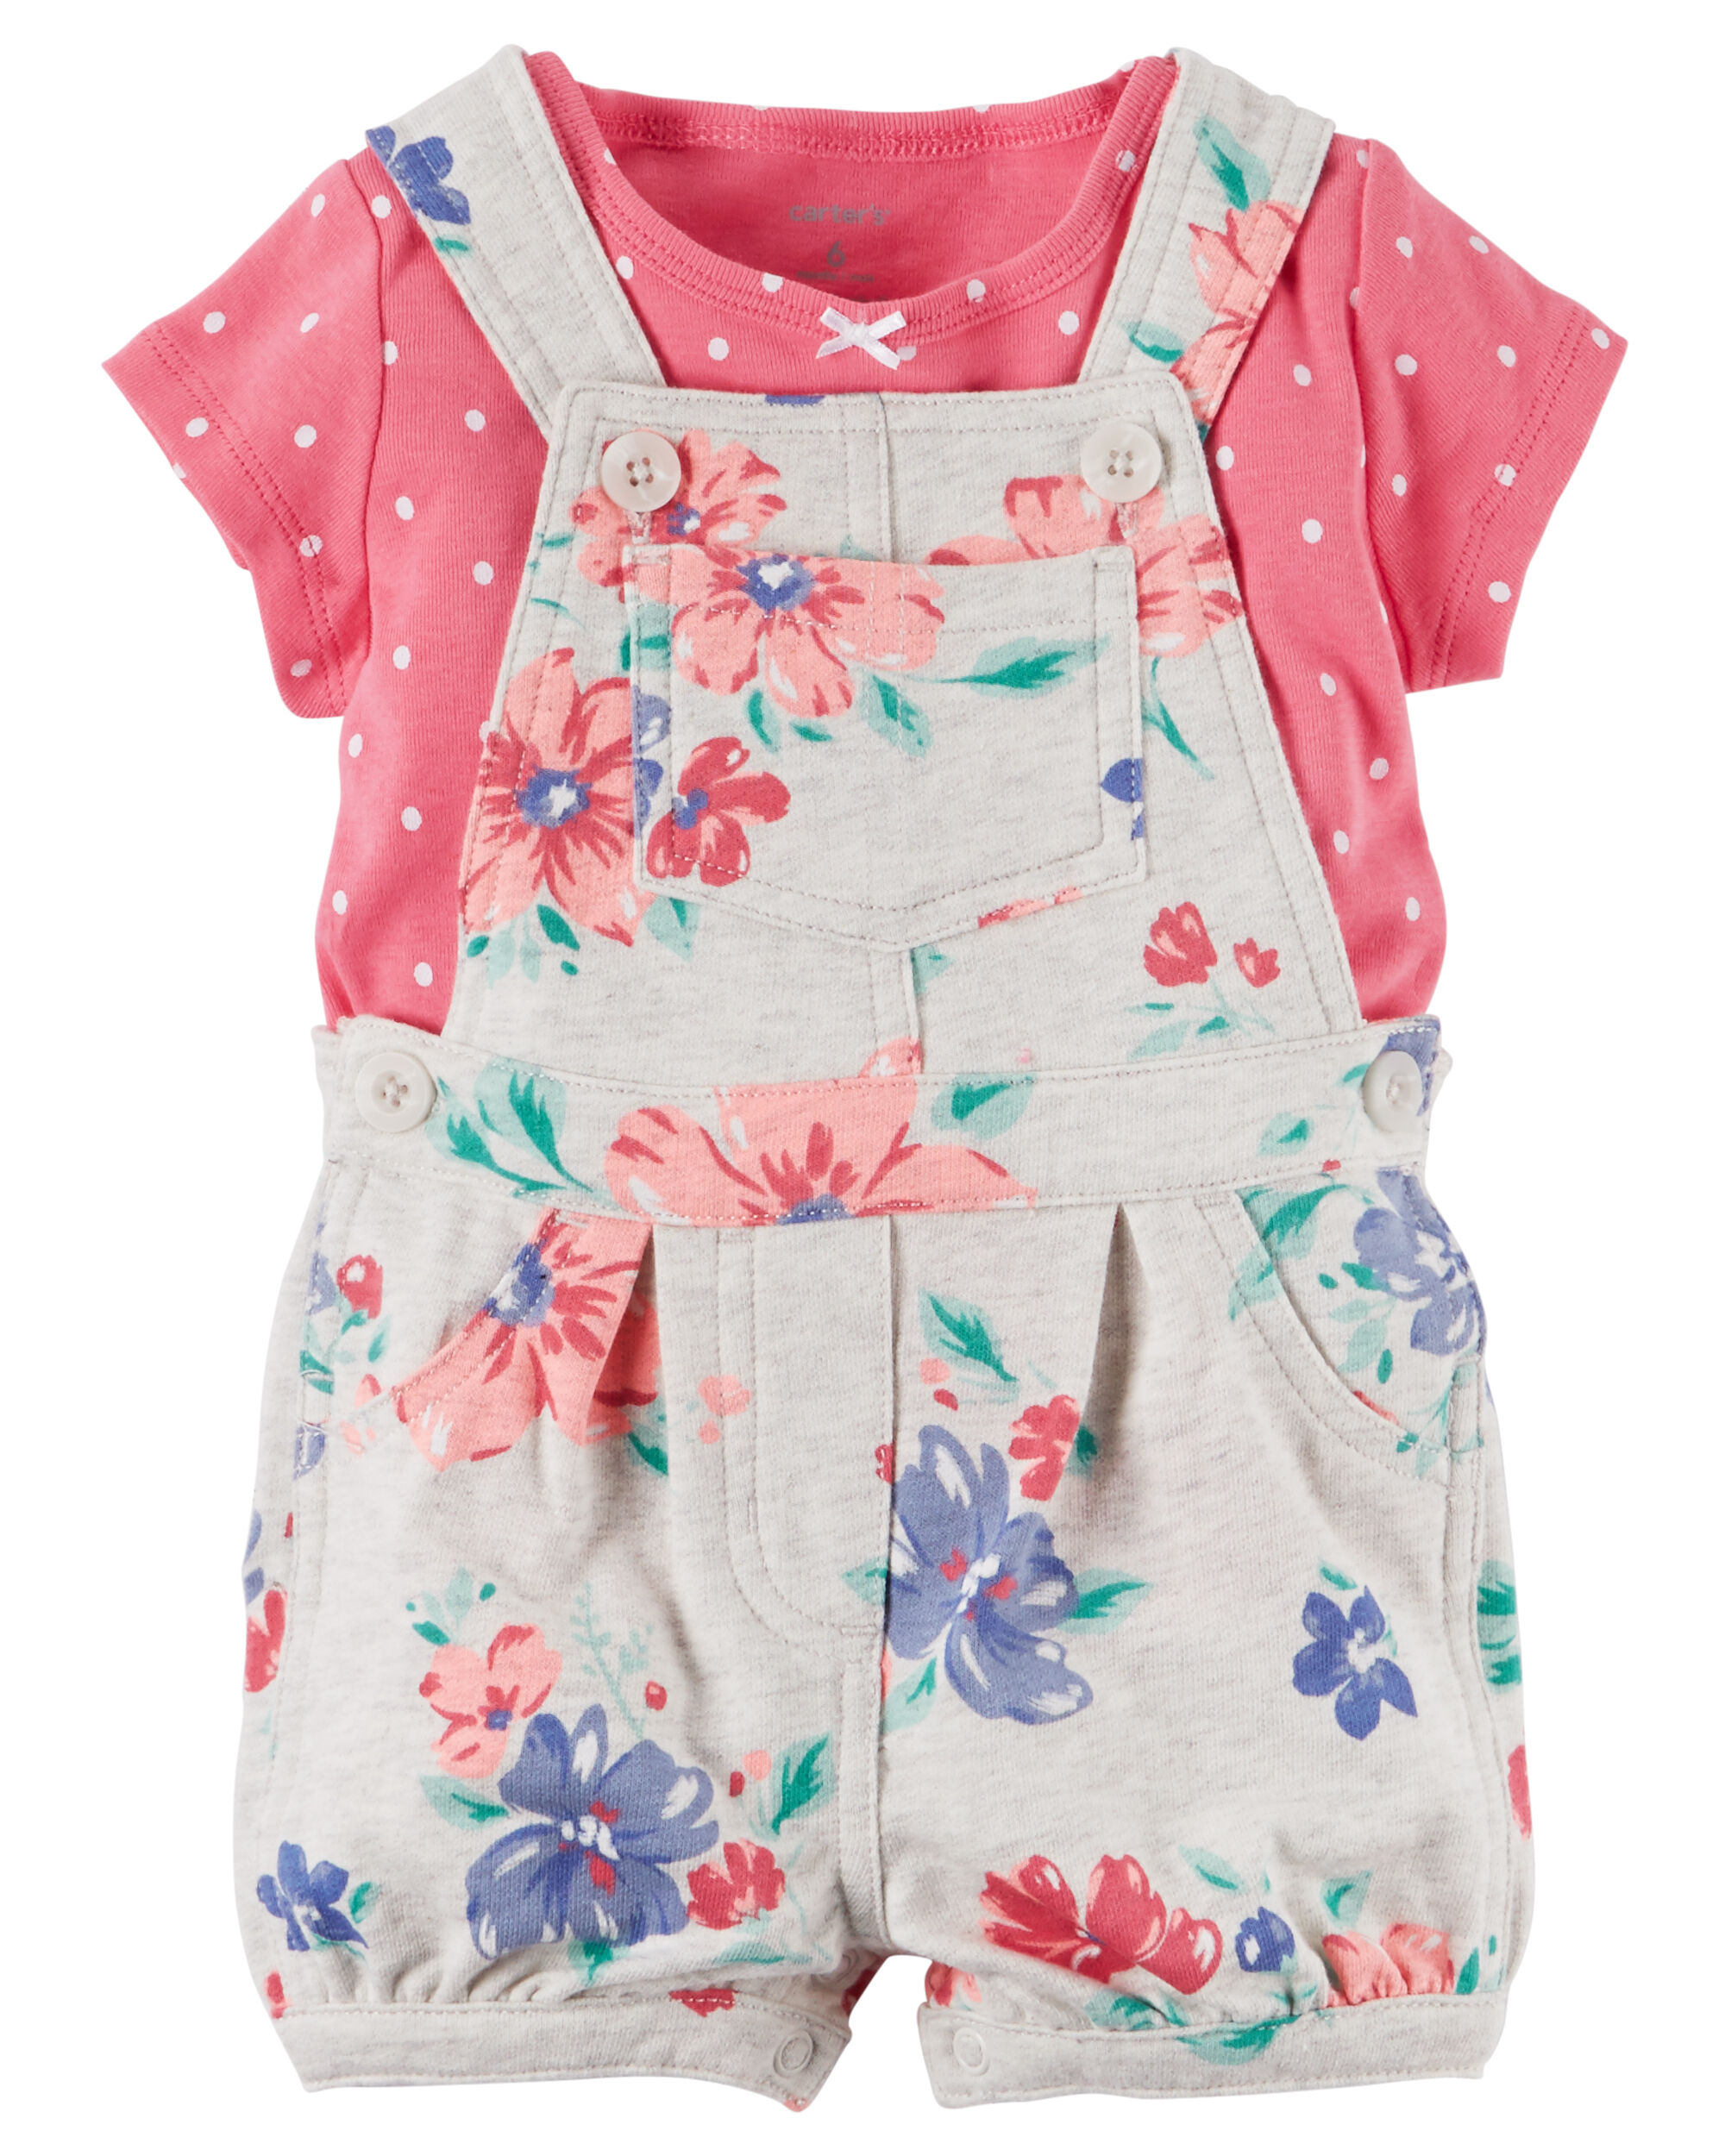 Find the cutest baby & newborn girl clothes online at getson.ga Get free shipping on baby girl clothes & outfits from the trusted name in kids' clothes.